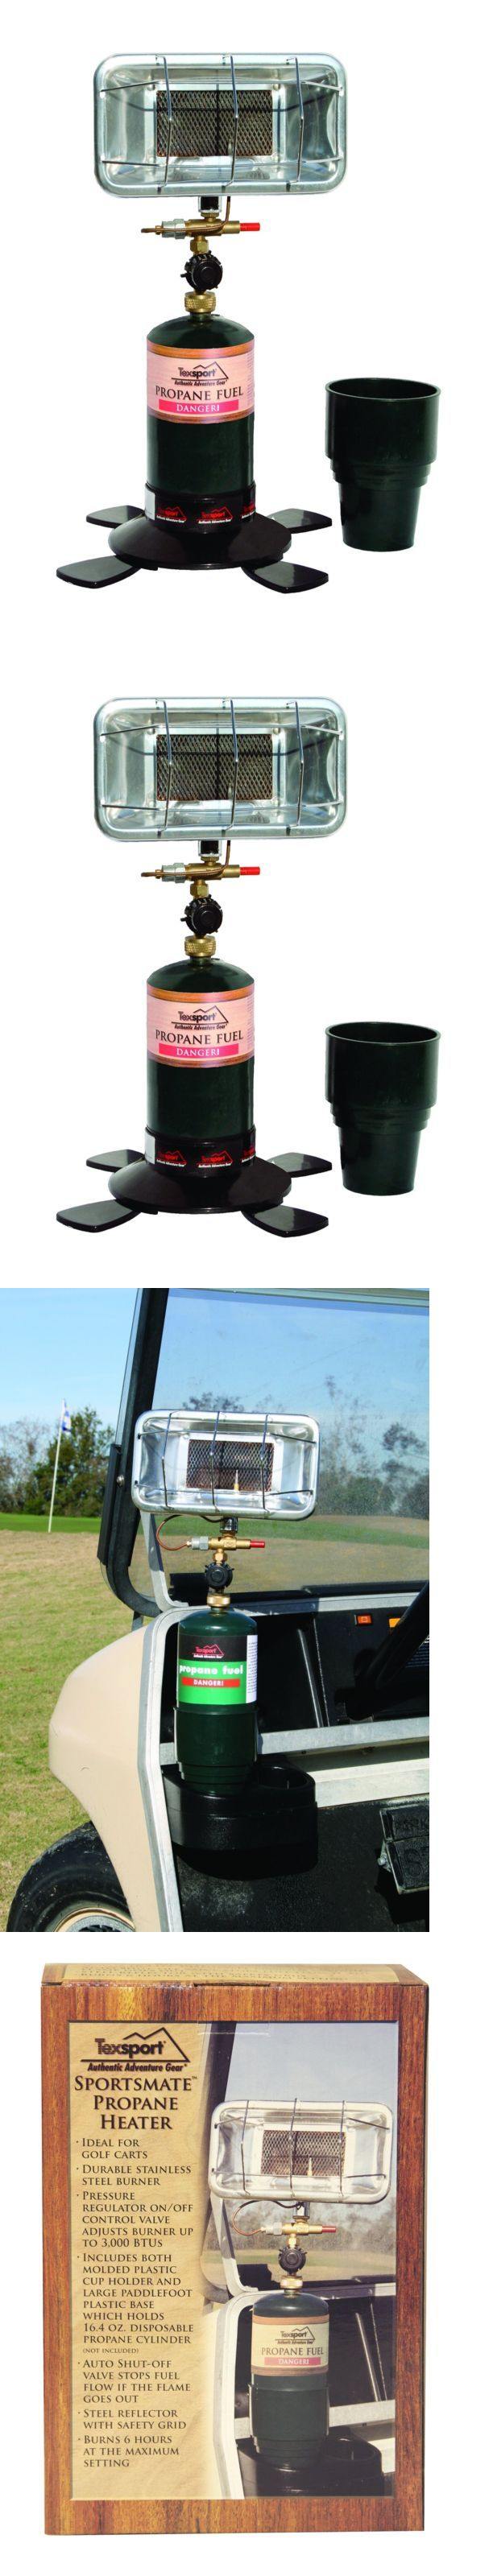 Generators and Heaters 16039: Texsport Portable Propane Heater For Golf Cart Camping Fishing Boat Outdoor BUY IT NOW ONLY: $54.71